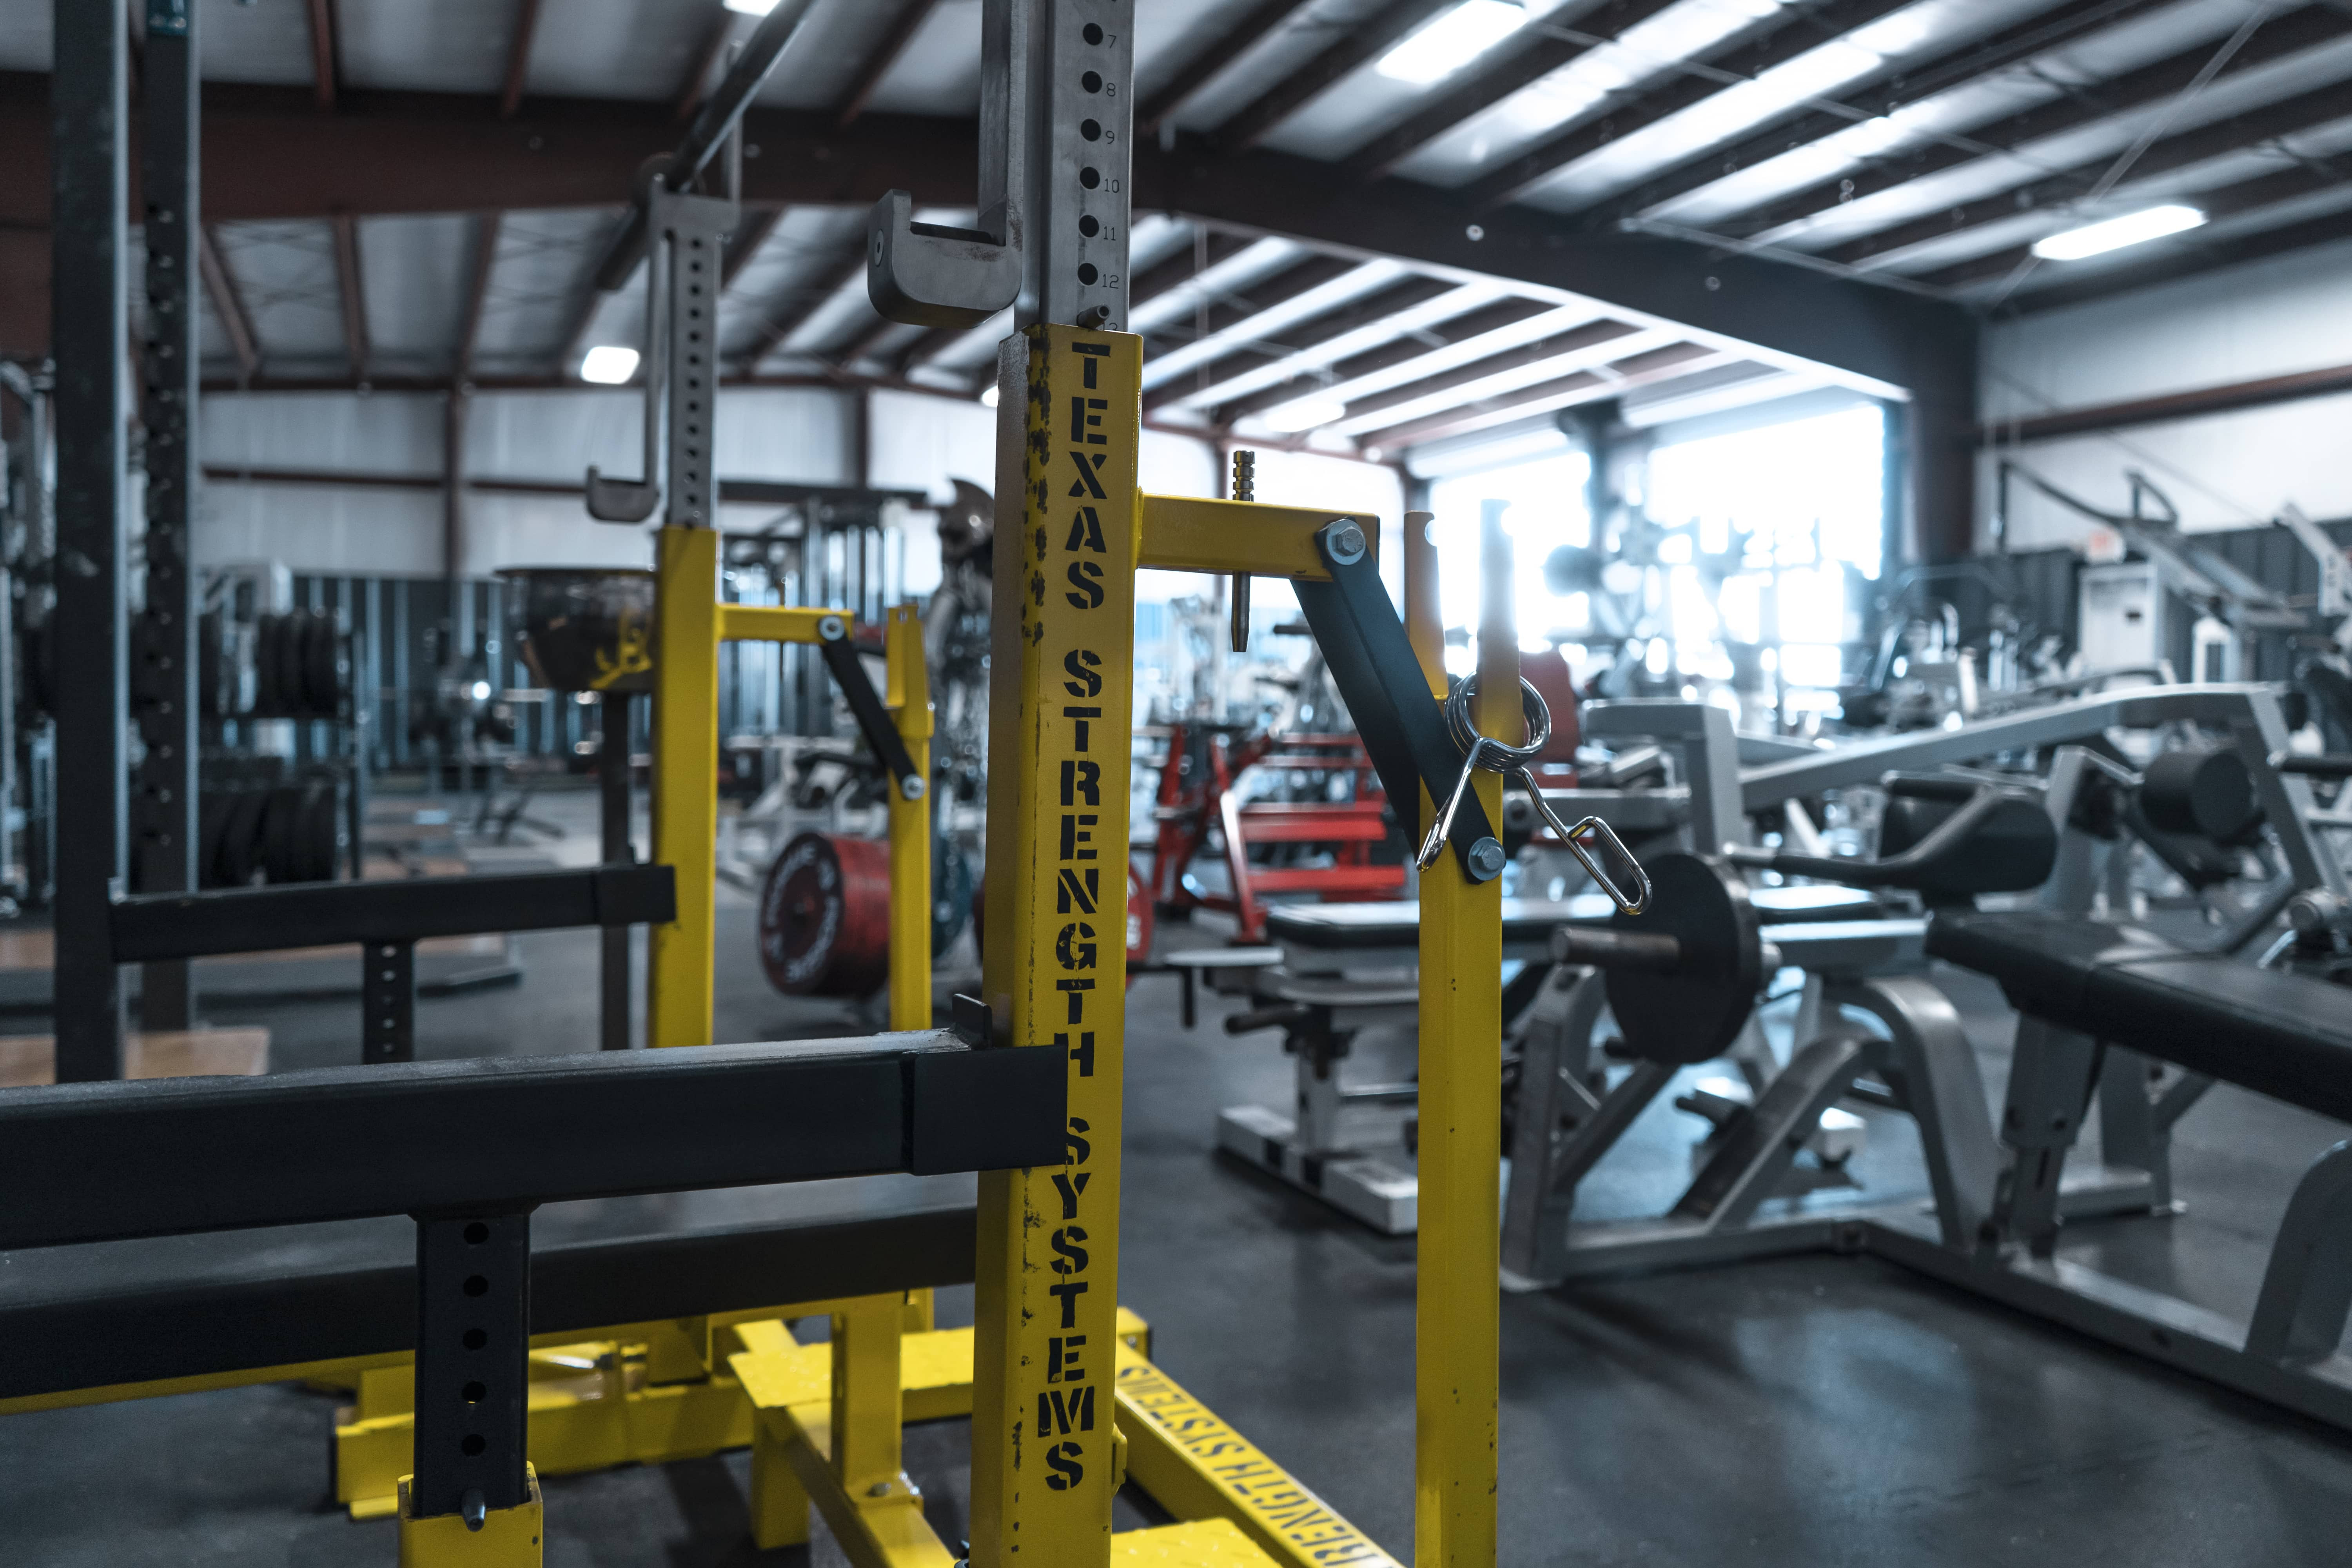 Equipment | Roman Iron Gym | Powerlifting | Calibrated Weights |